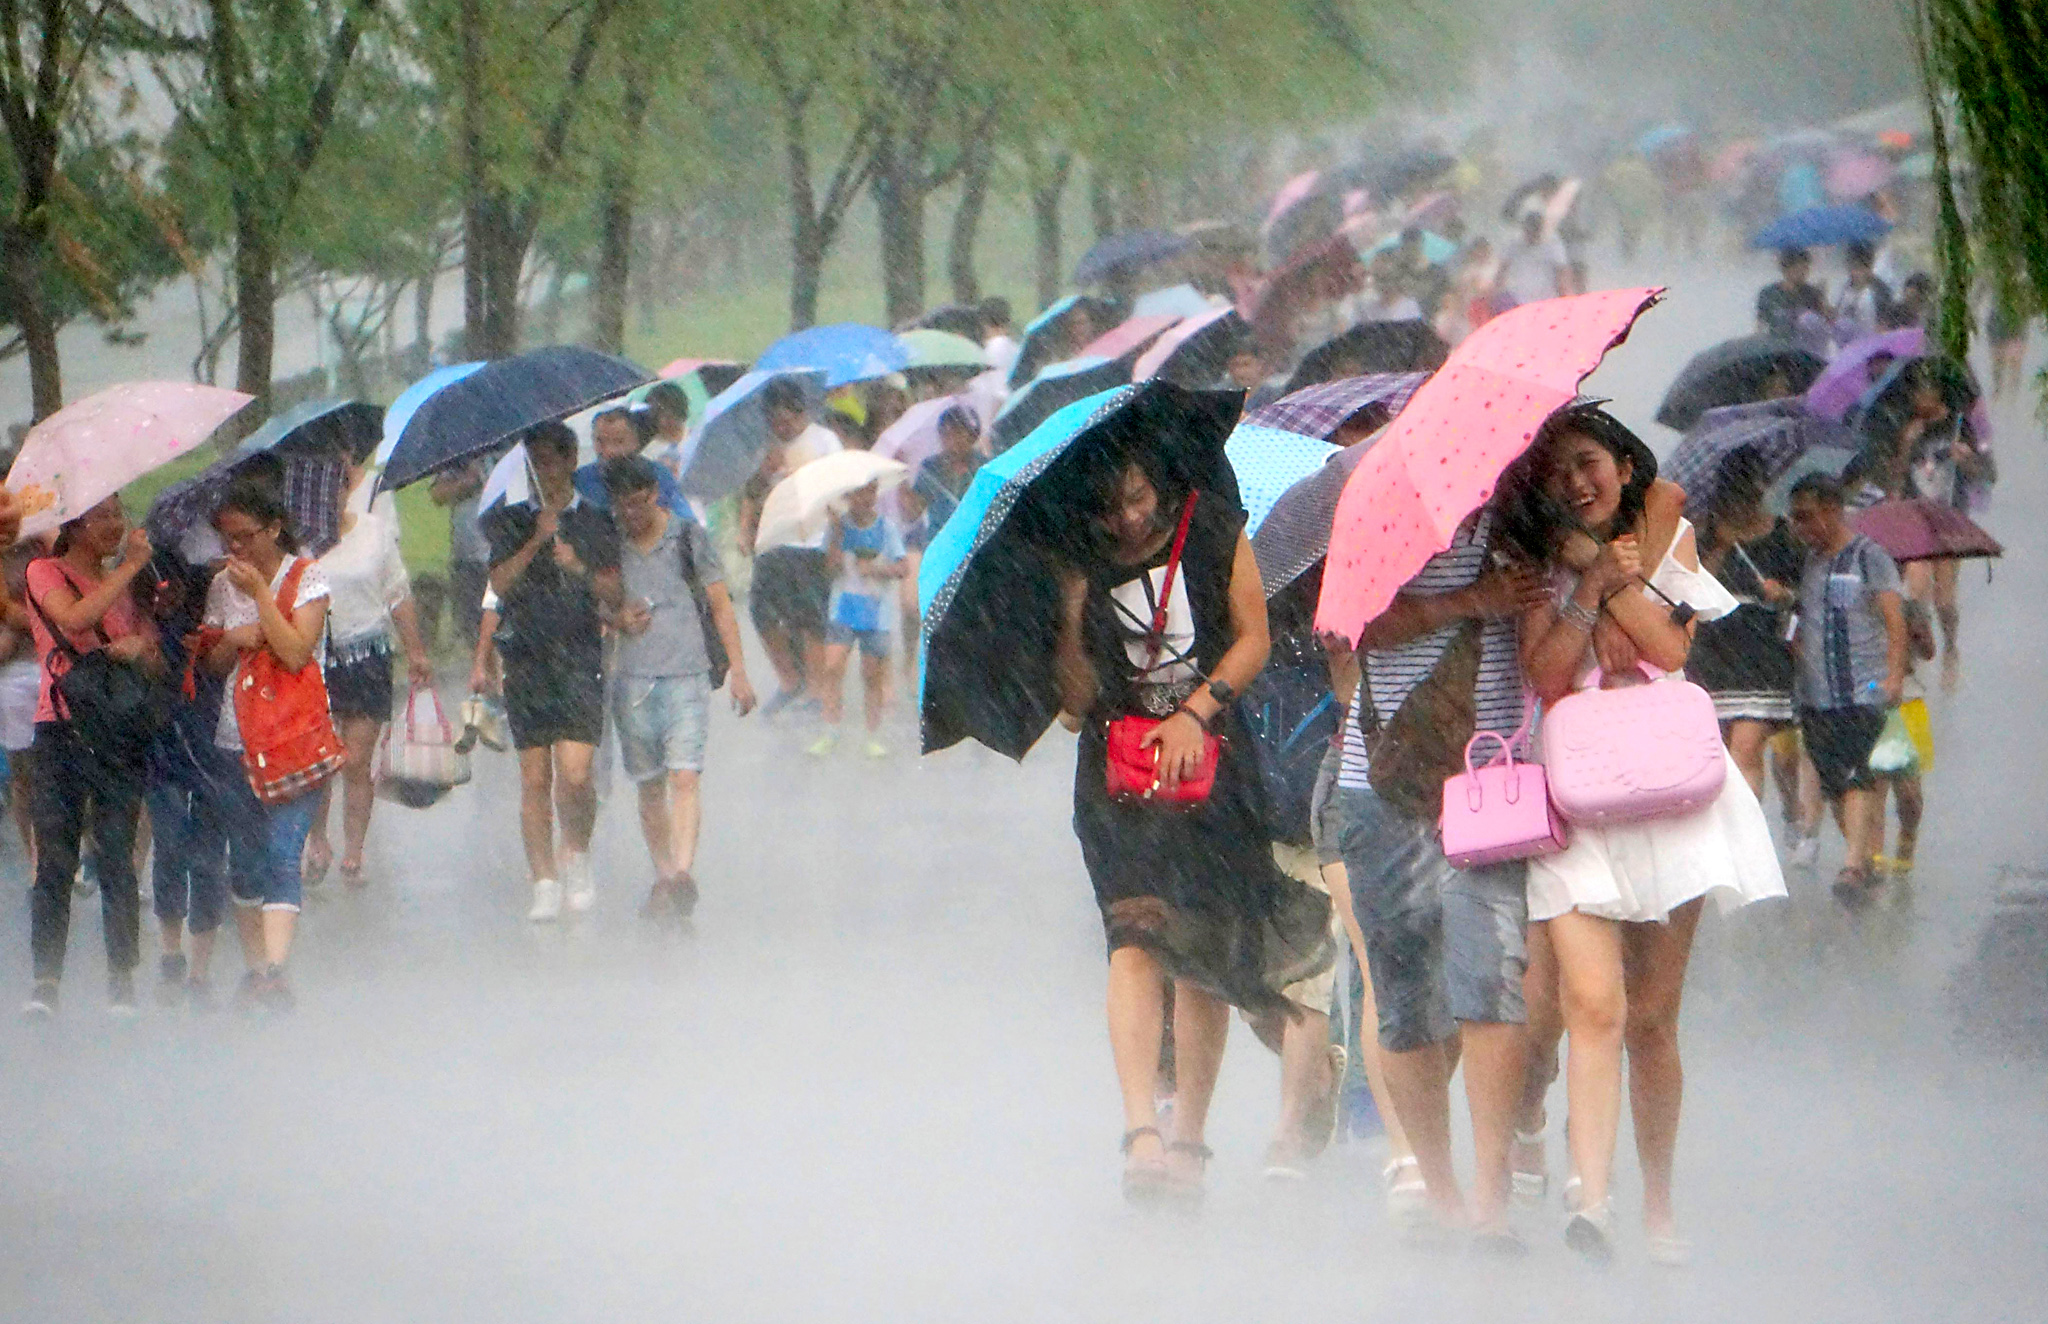 "Typhoon ""Soudelor"" Approaches To Southeast China...HANGZHOU, CHINA - AUGUST 07: (CHINA OUT) Paople use umbrellas as they walk in strong wind and heavy rain near West Lake as Typhoon ""Soudelor"" approaches on August 7, 2015 in Hangzhou, Zhejiang Province of China. Typhoon ""Soudelor"" will land on southeastern China's coastal areas this weekend, according to meteorological departments.  (Photo by ChinaFotoPress/Getty Images)"